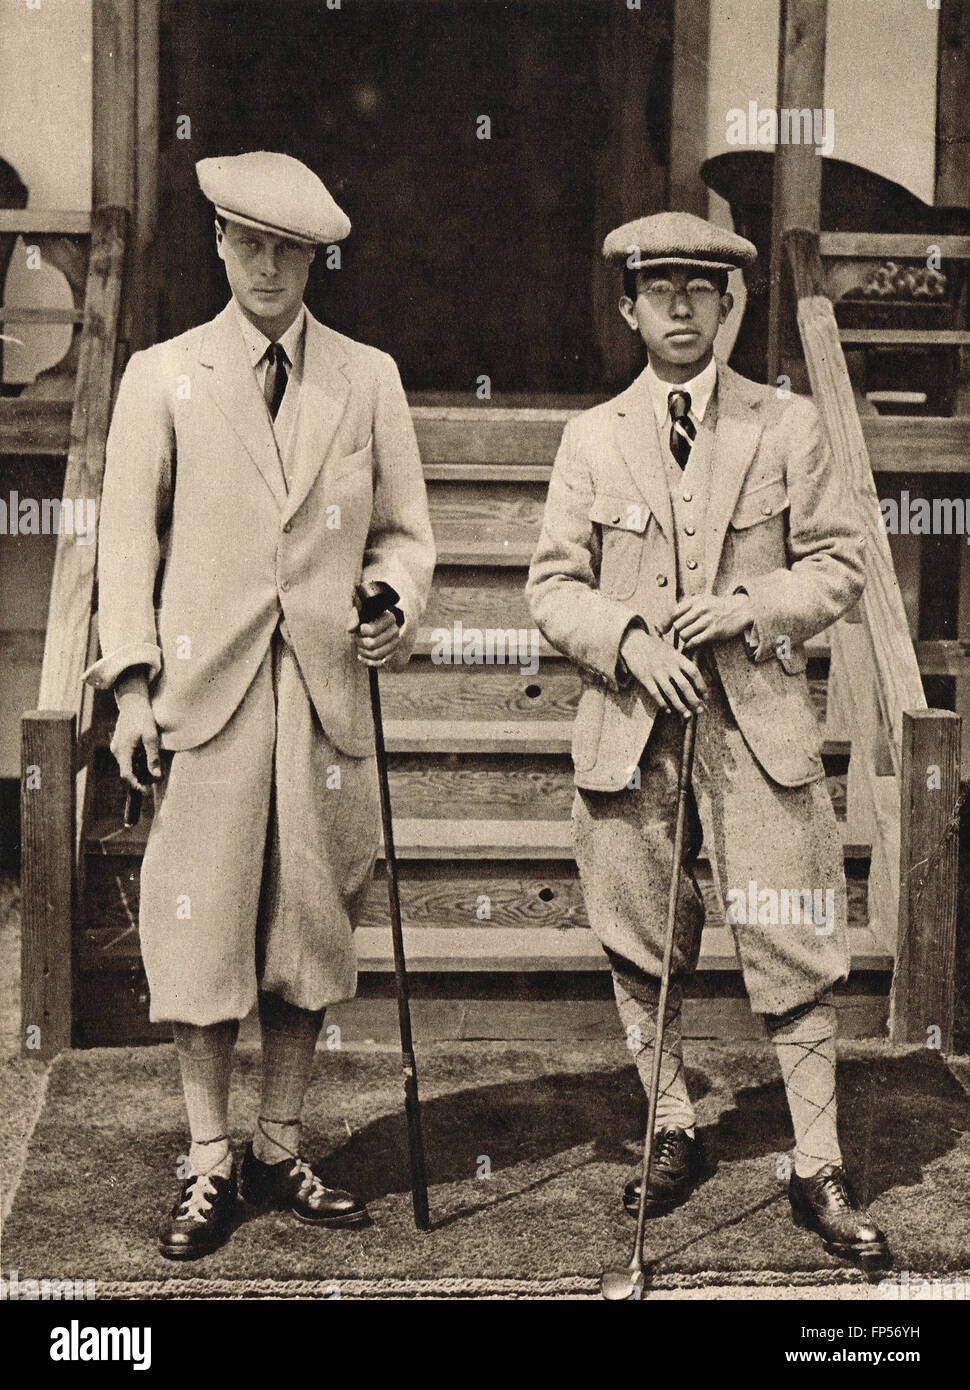 Edward Prince of Wales the Future King Edward VIII   the Prince Regent of  Japan posing with golf gear Japan 1922 d636b6bf49a1